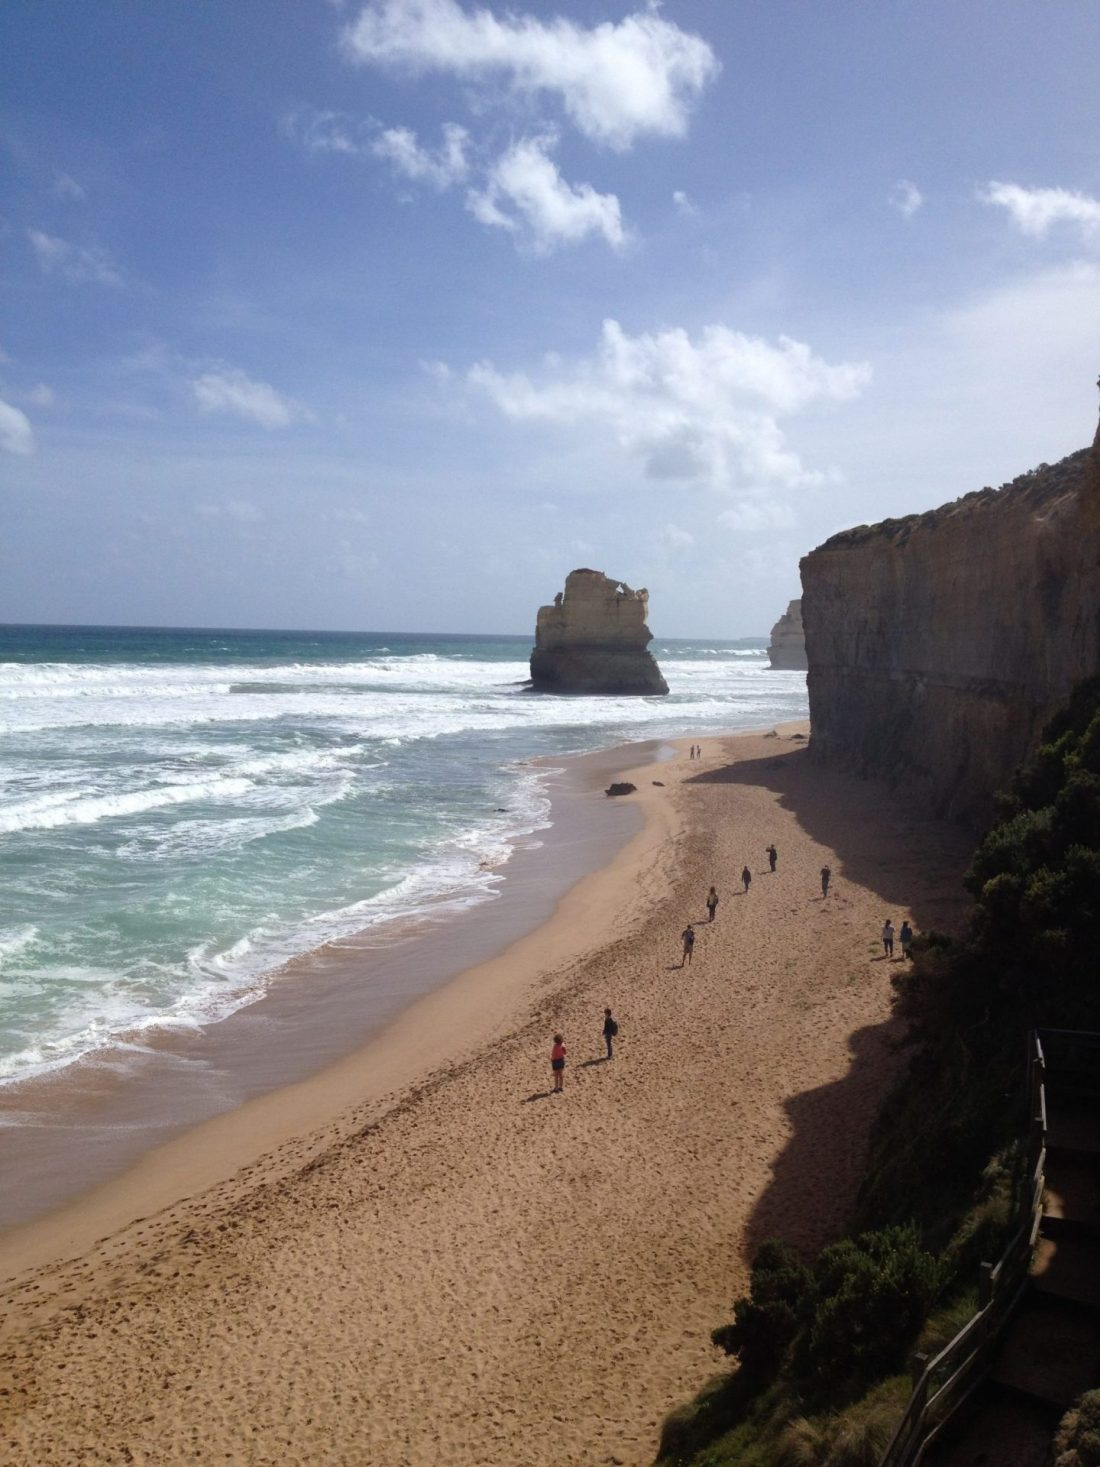 A view of the Twelve Apostles beach